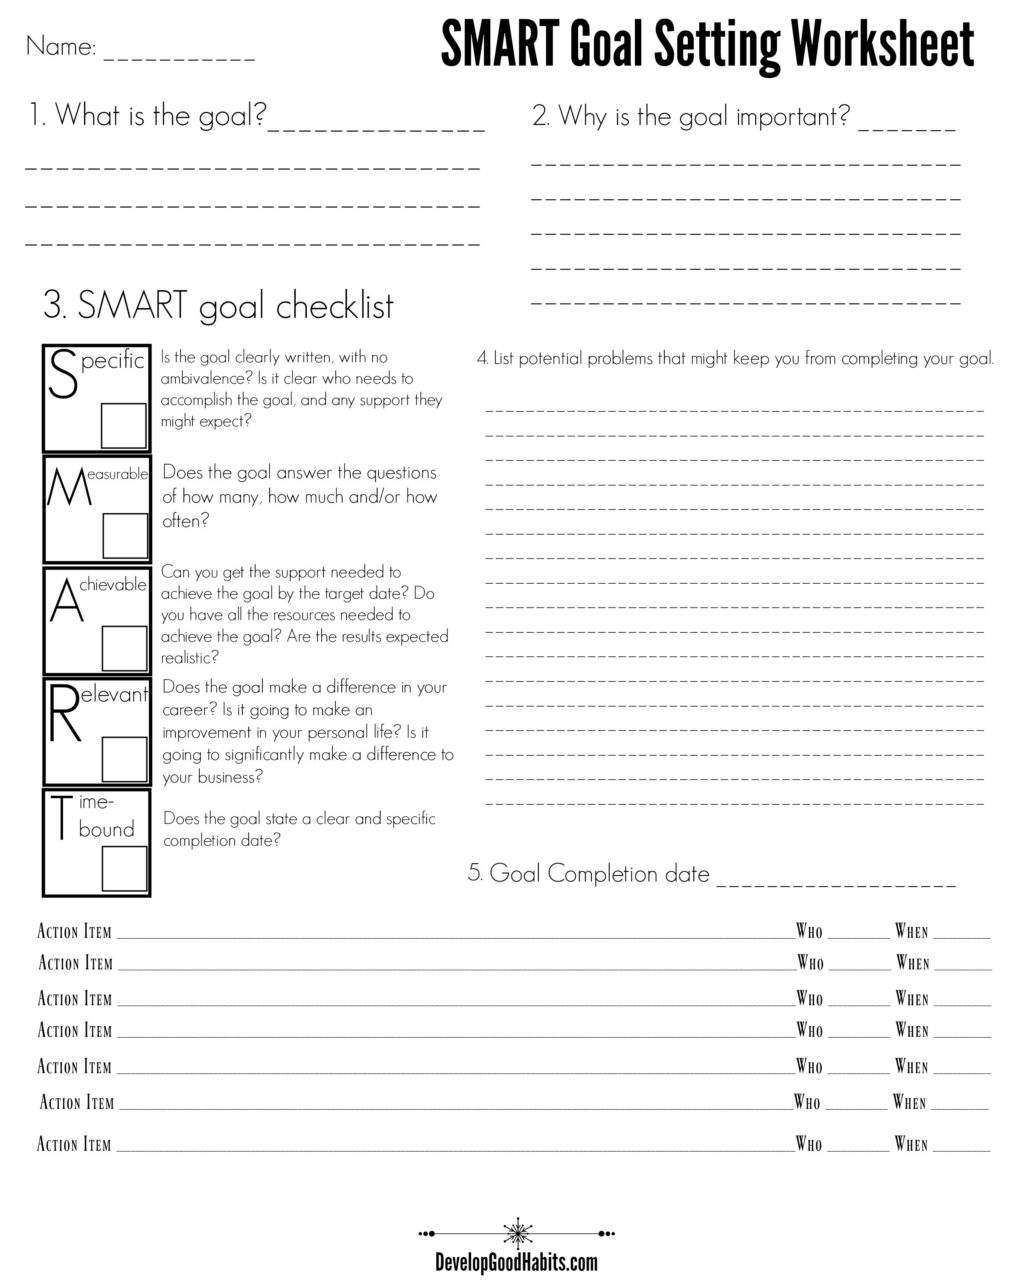 Smart Goal Setting Worksheet